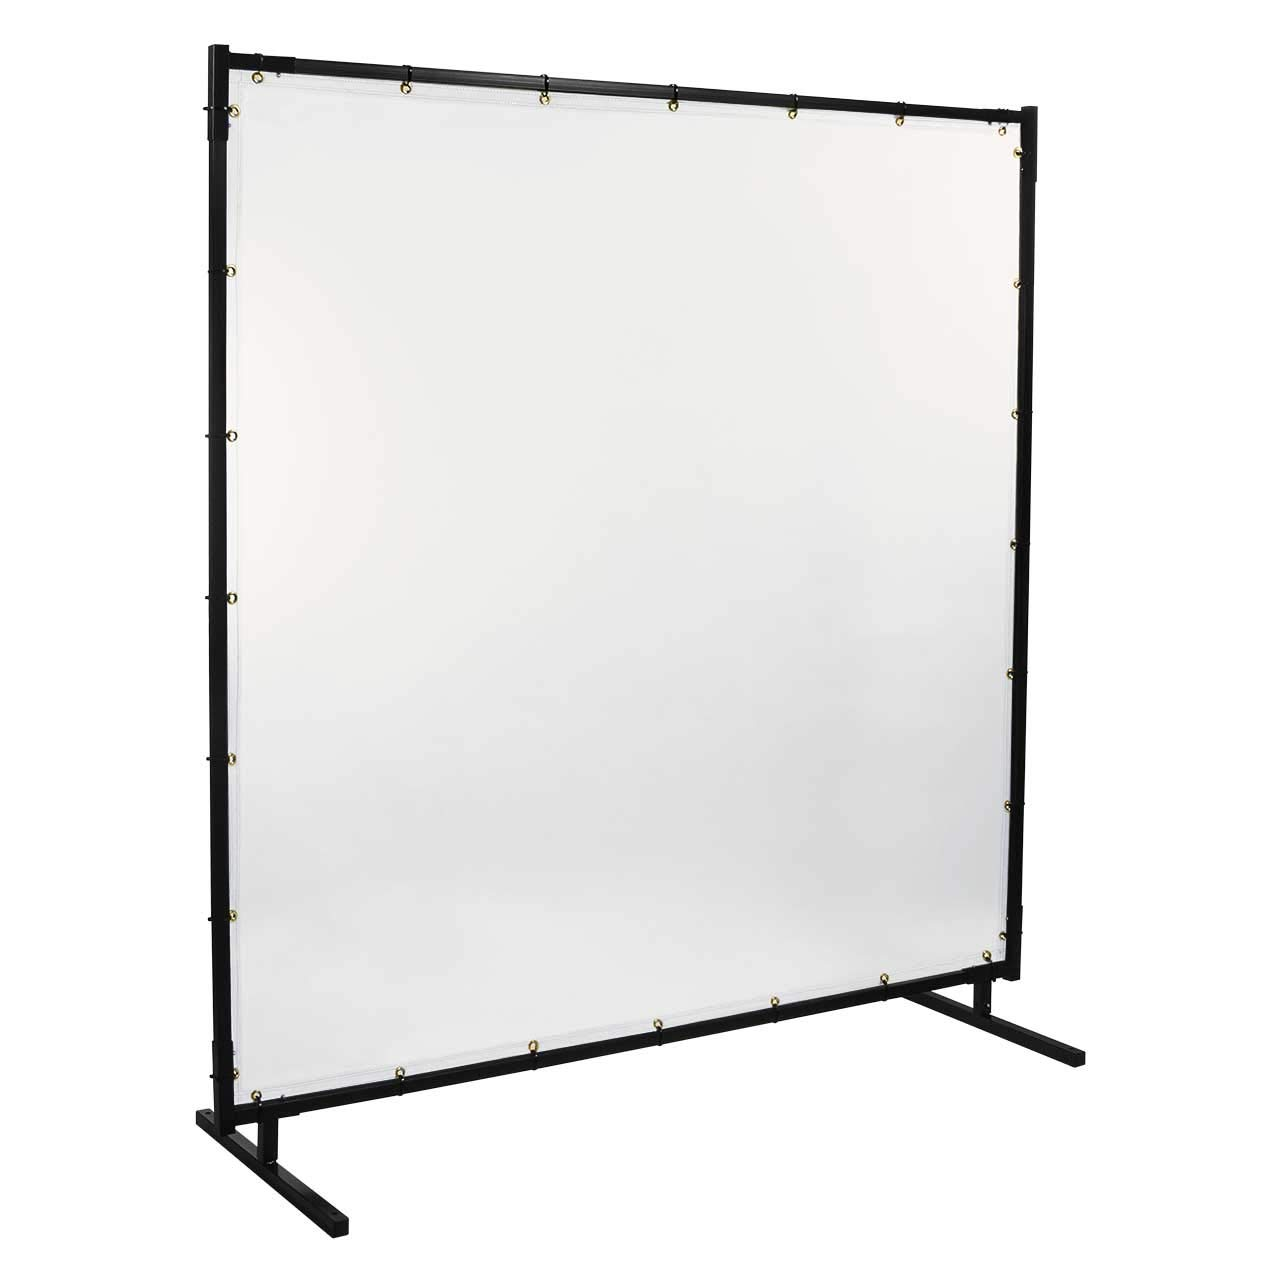 Steiner 539HD-6X6 Protect-O-Screen HD Welding Screen with 16 Mil Vinyl Curtain, Clear, 6' x 6' by Steiner